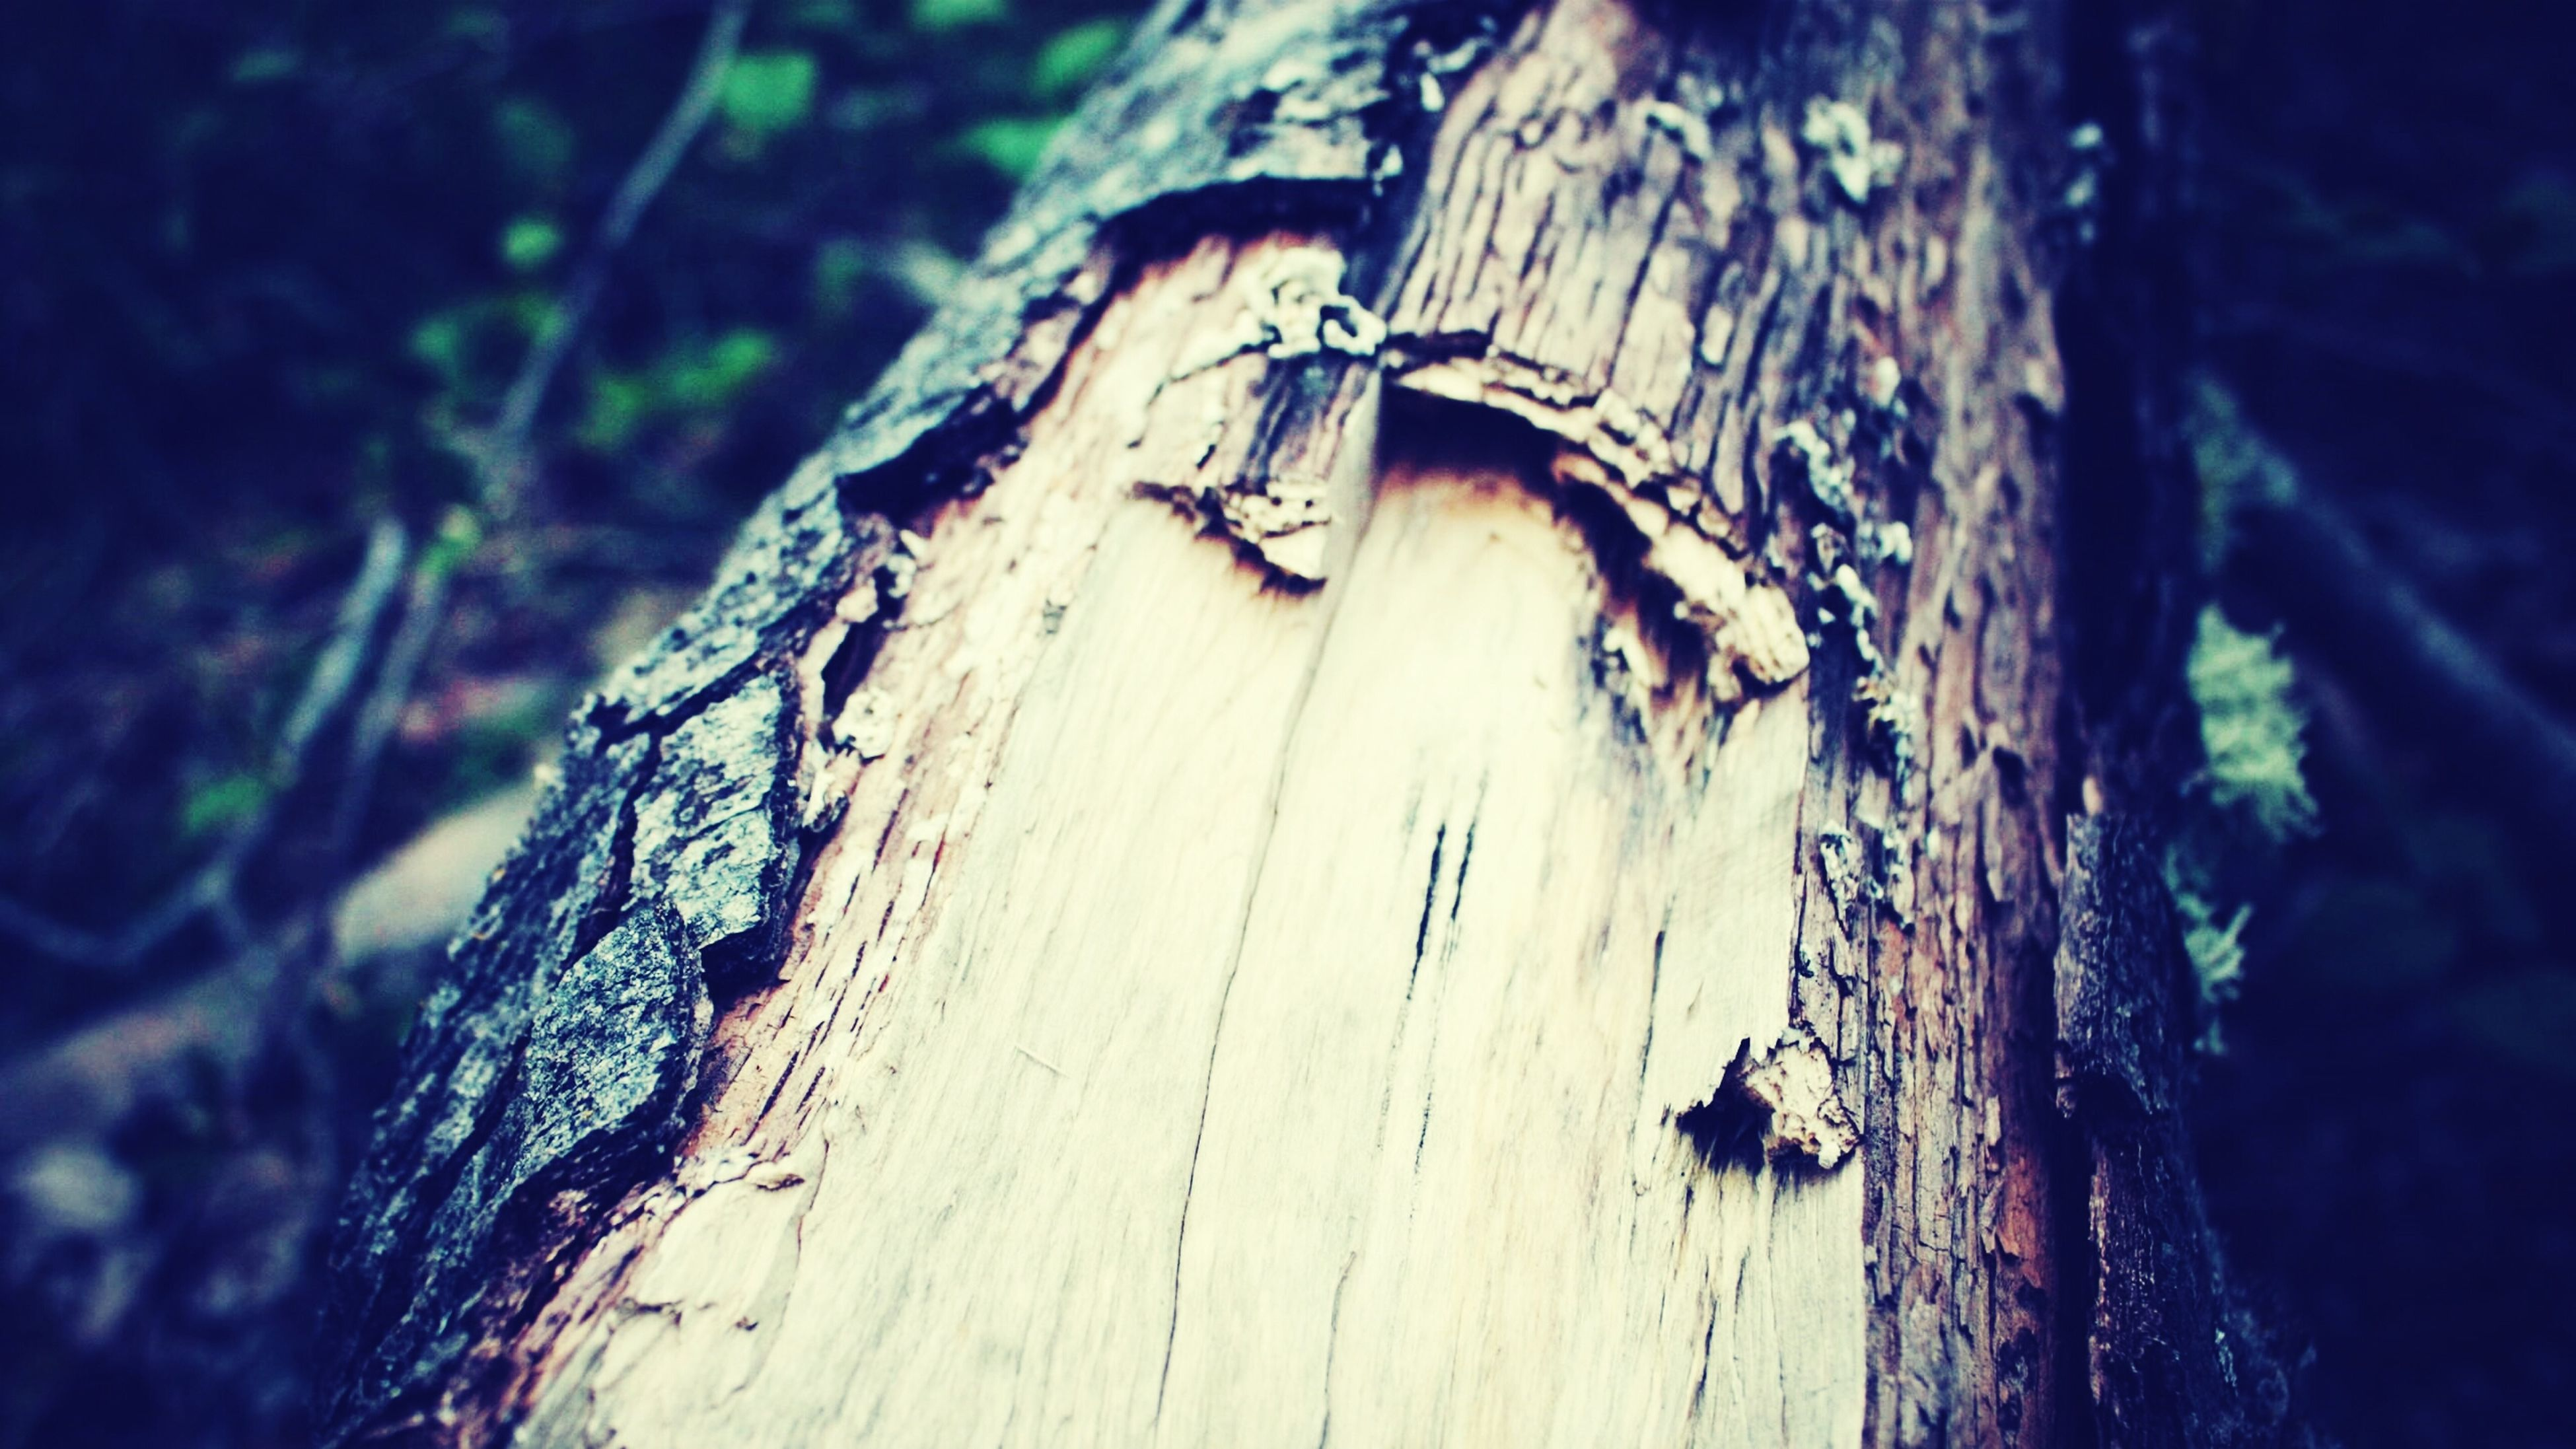 wood - material, weathered, damaged, close-up, wood, old, wooden, focus on foreground, run-down, built structure, textured, tree trunk, deterioration, outdoors, abandoned, day, nature, no people, architecture, house